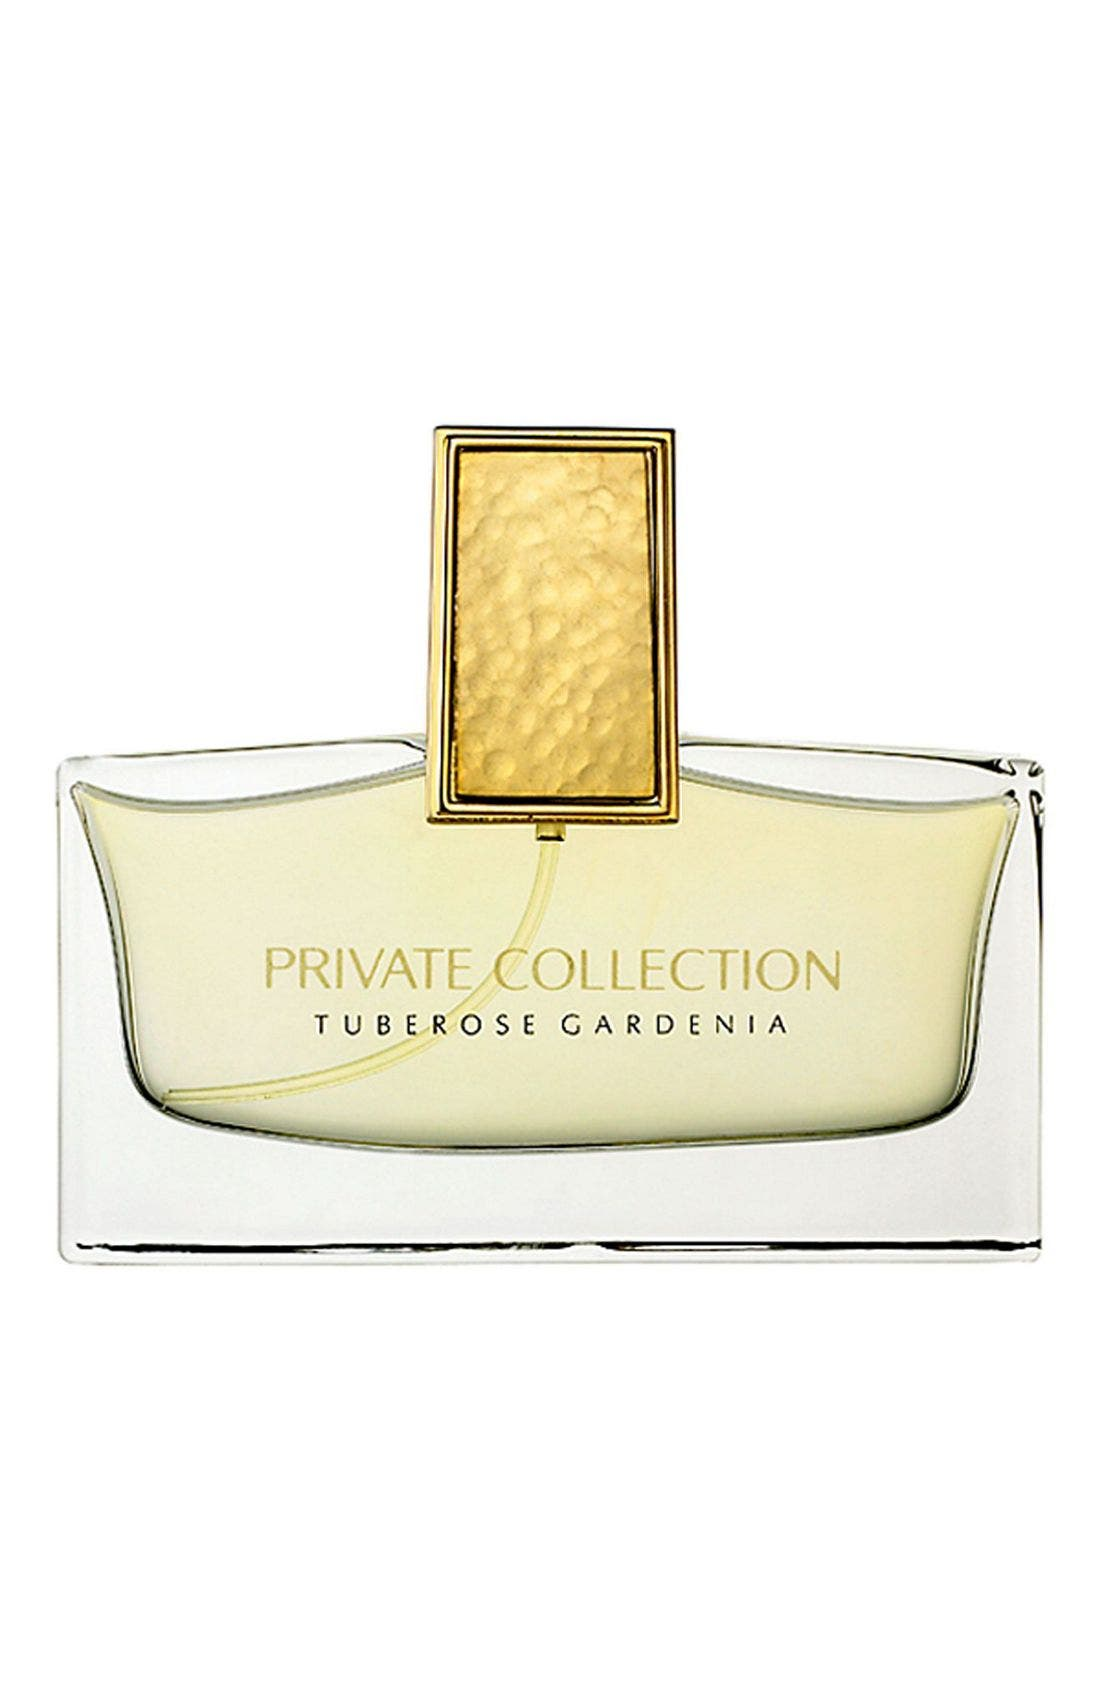 Estée Lauder Private Collection - Tuberose Gardenia Eau de Parfum Spray